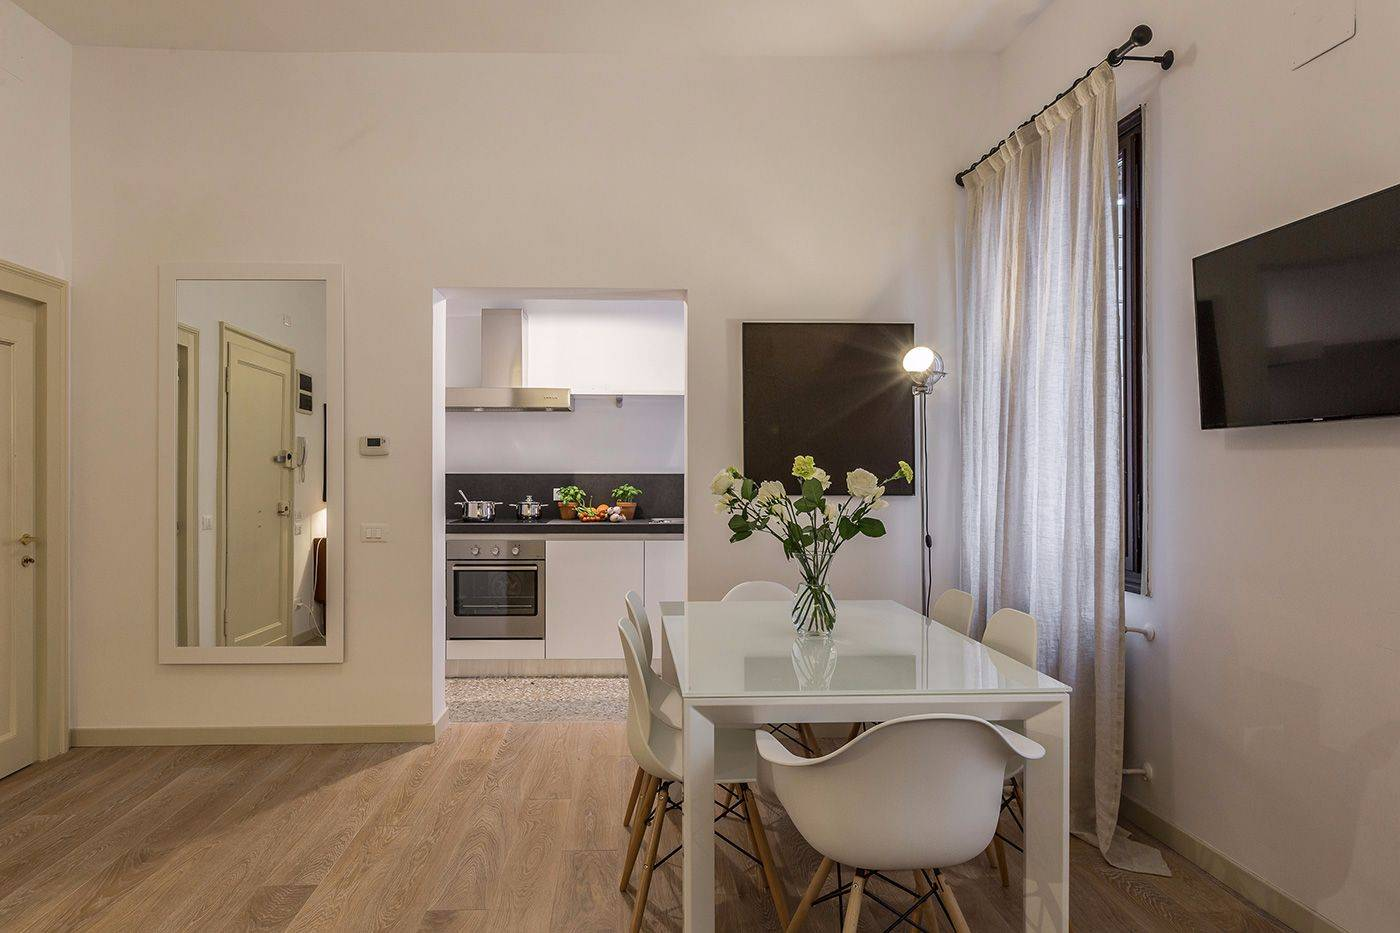 Venice holiday apartments San Marco distric